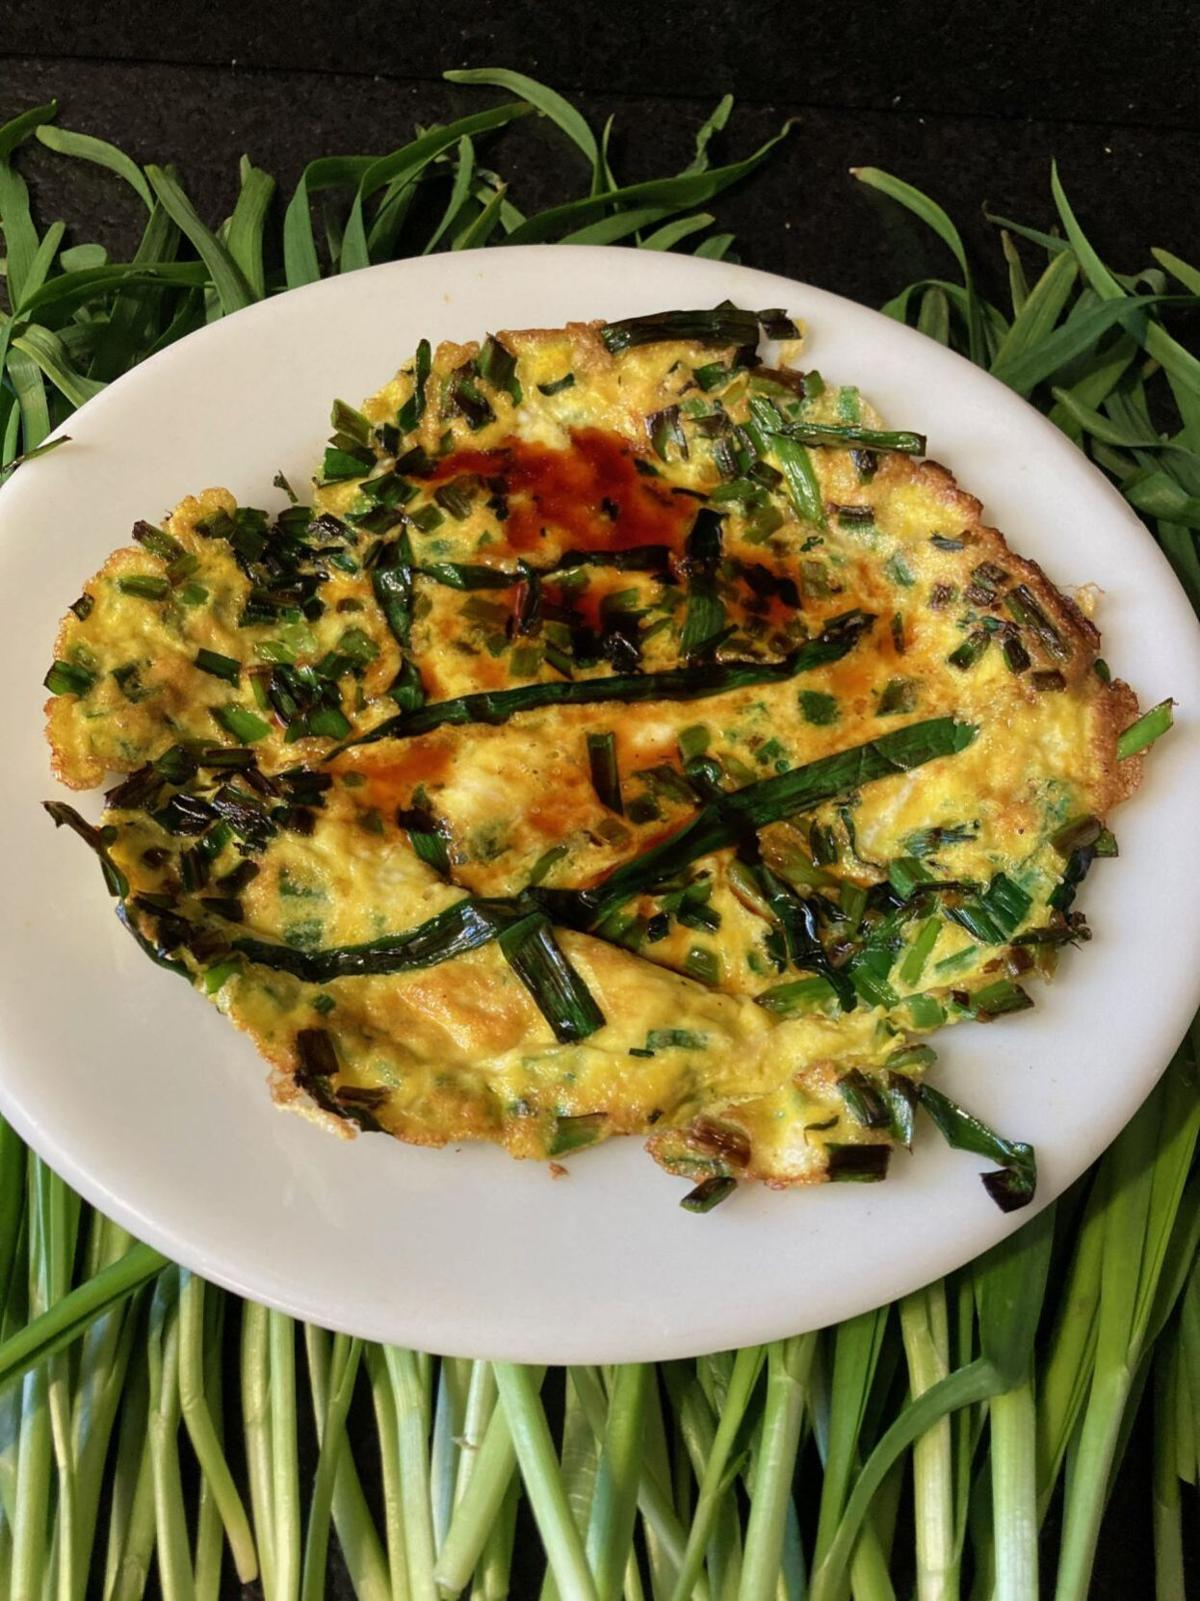 Chive Omelet with Soy Sauce